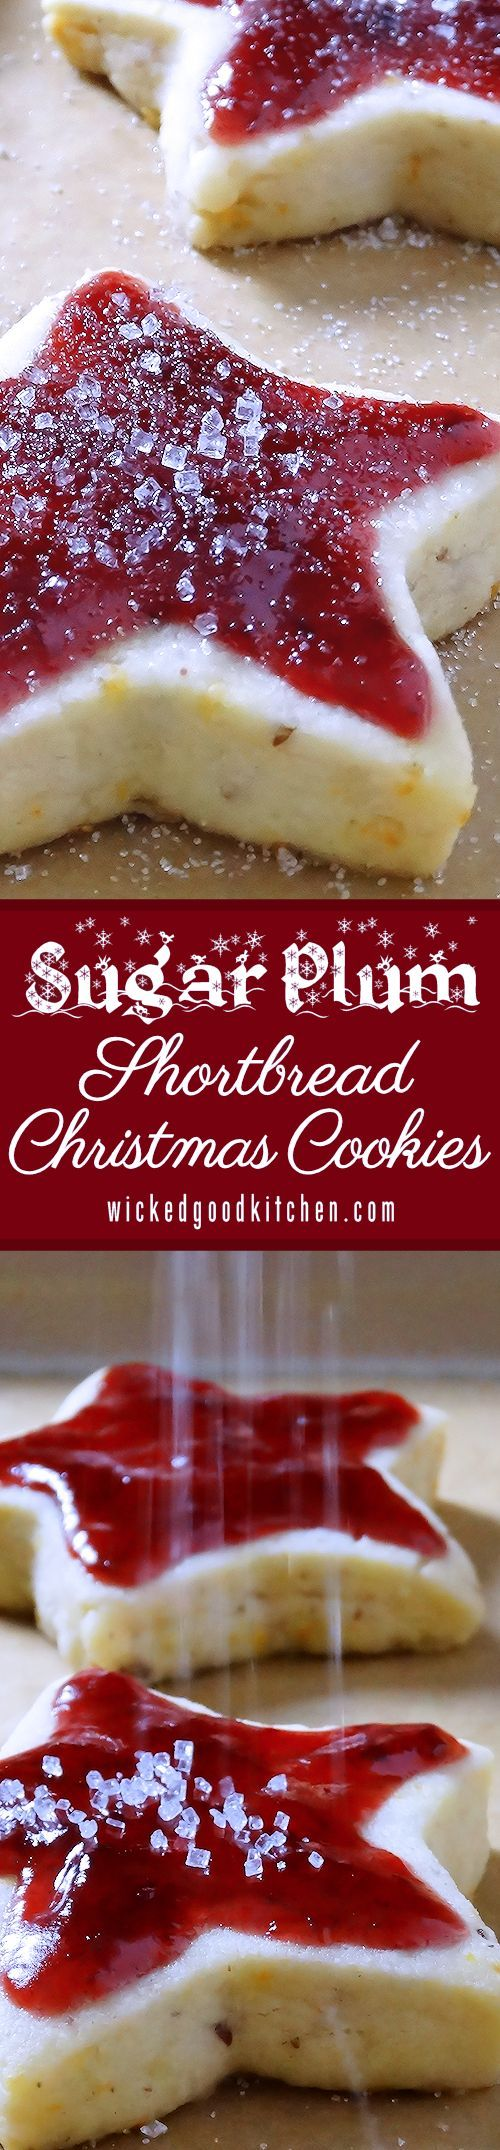 Sugar Plum Shortbread Christmas Cookies ~ Scrumptious old-fashioned buttery shortbread kissed with sunny orange zest, pecans and a whisper of spices topped with Sugar Plum Jam. They are like a jam-topped English scone turned into a shortbread cookie! Everyone will LOVE them! Includes gluten free option. | sugarplum holiday recipe